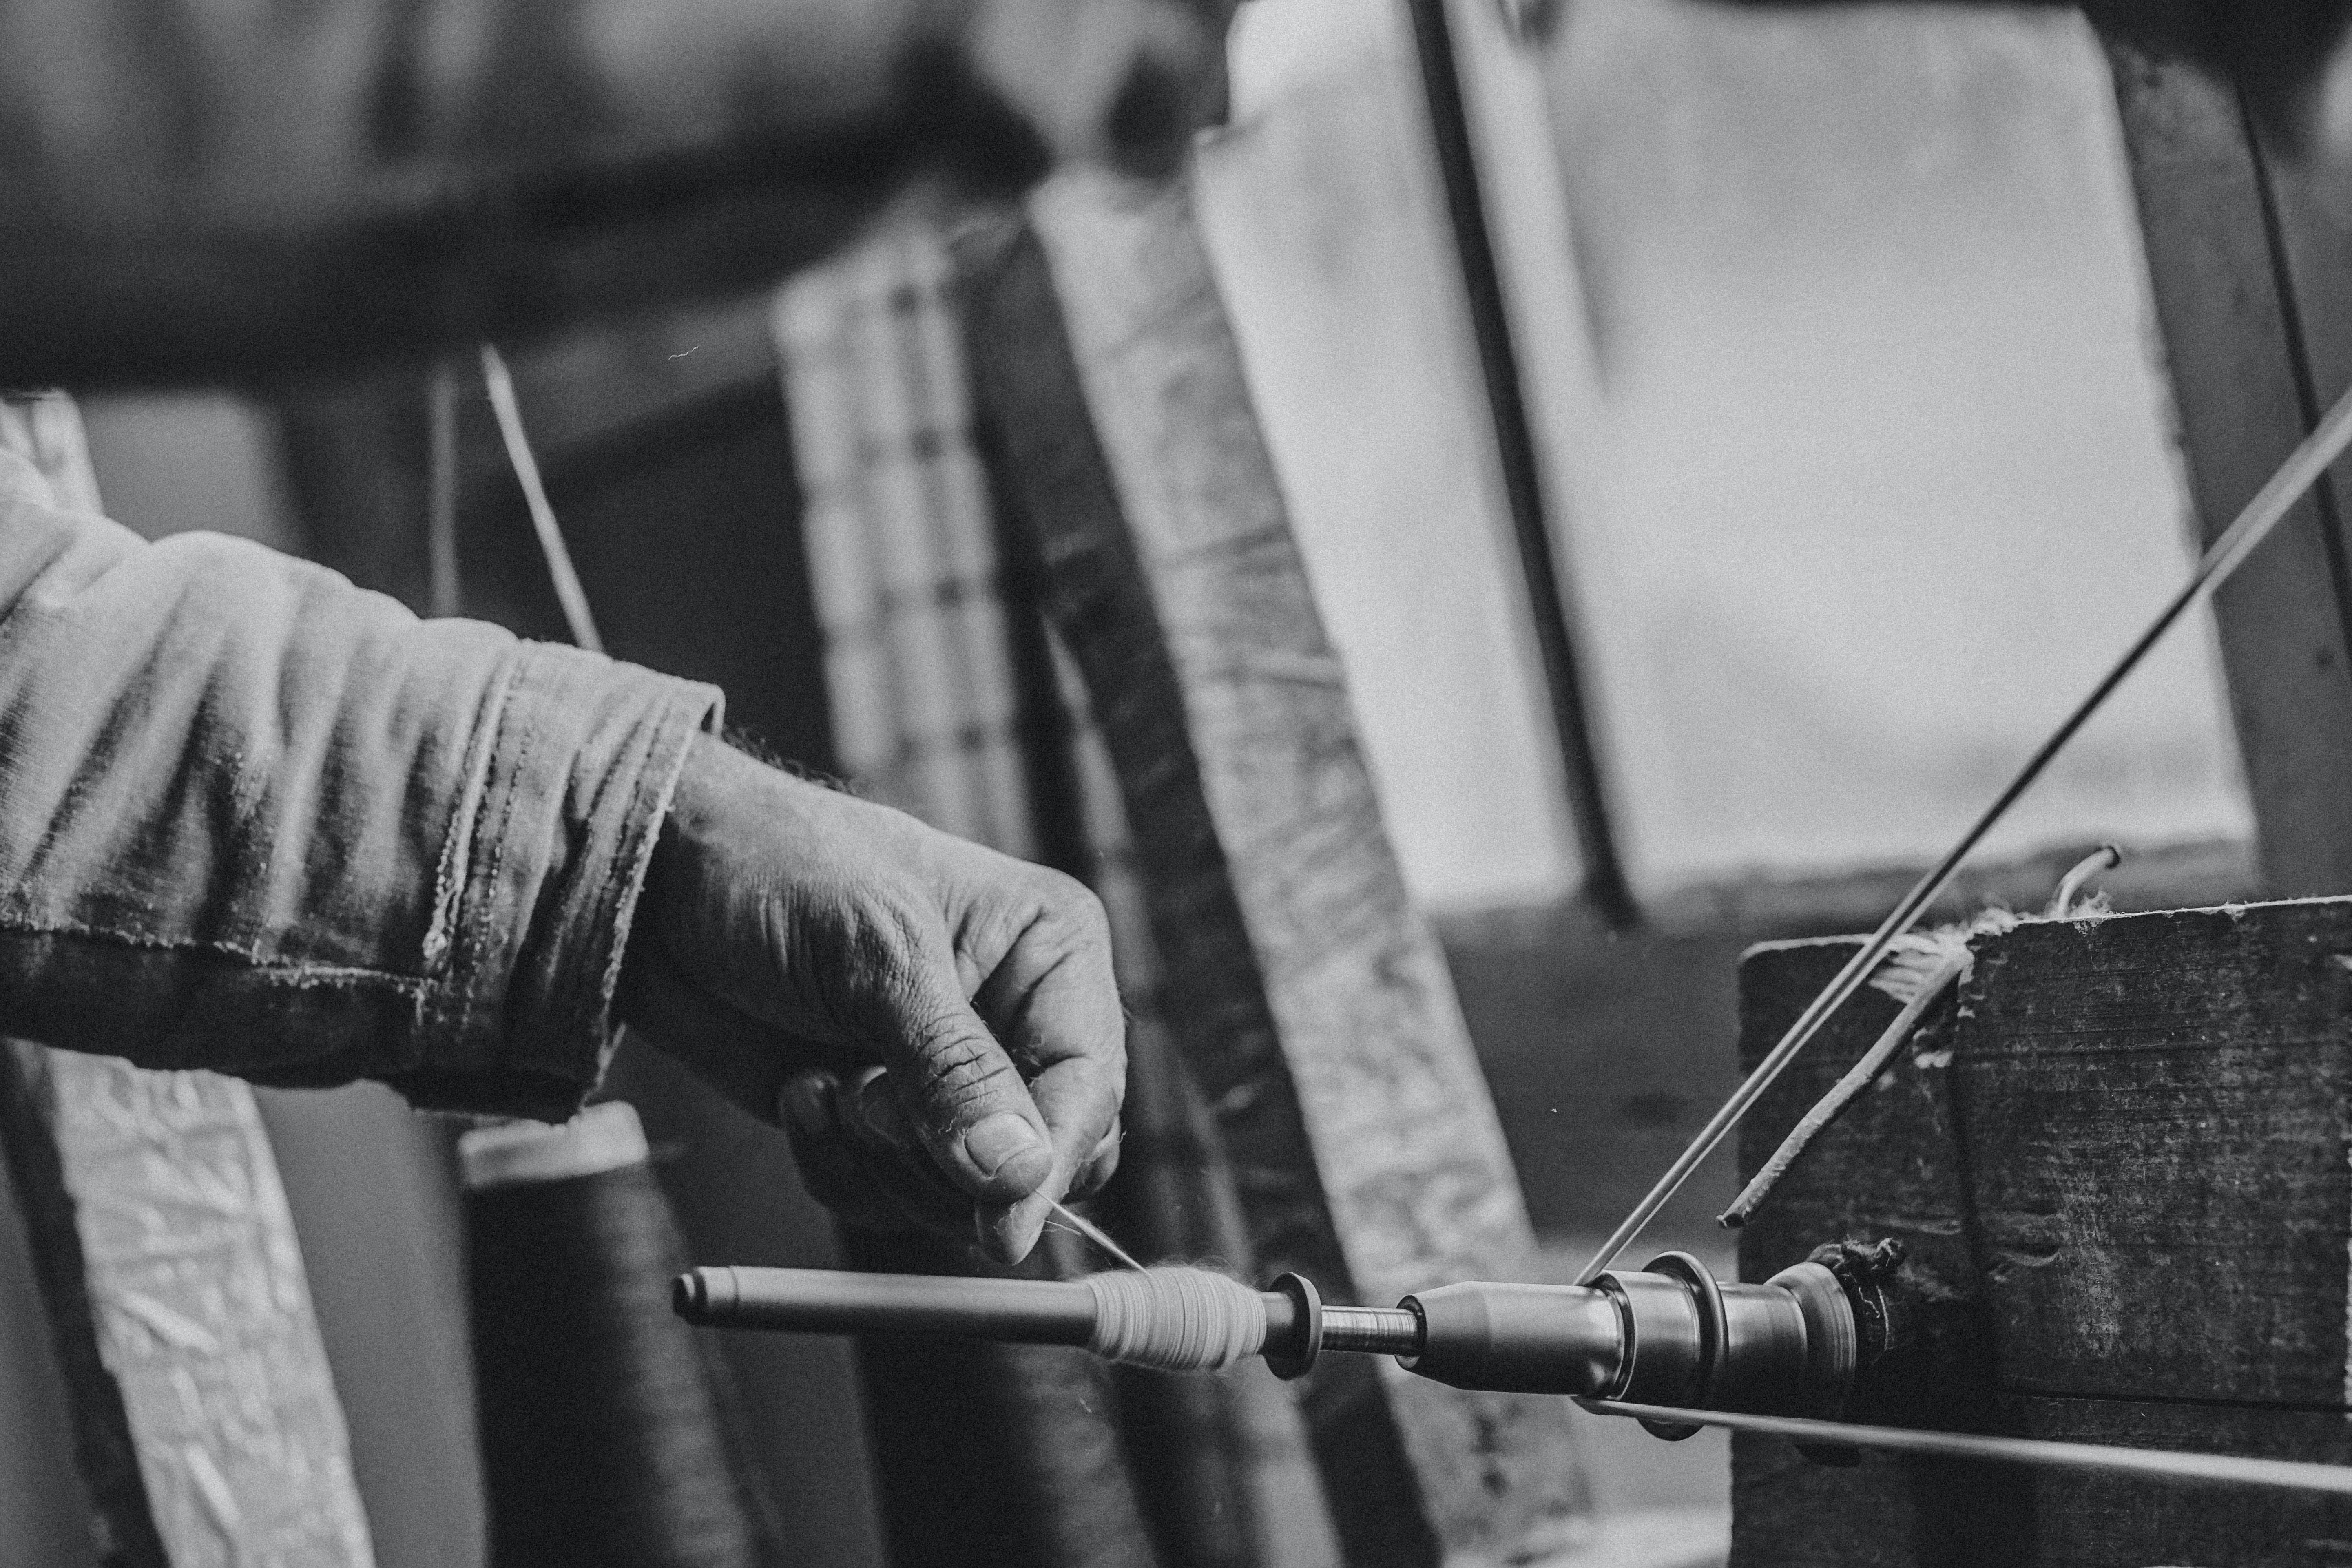 A black-and-white shot of a person spinning thread